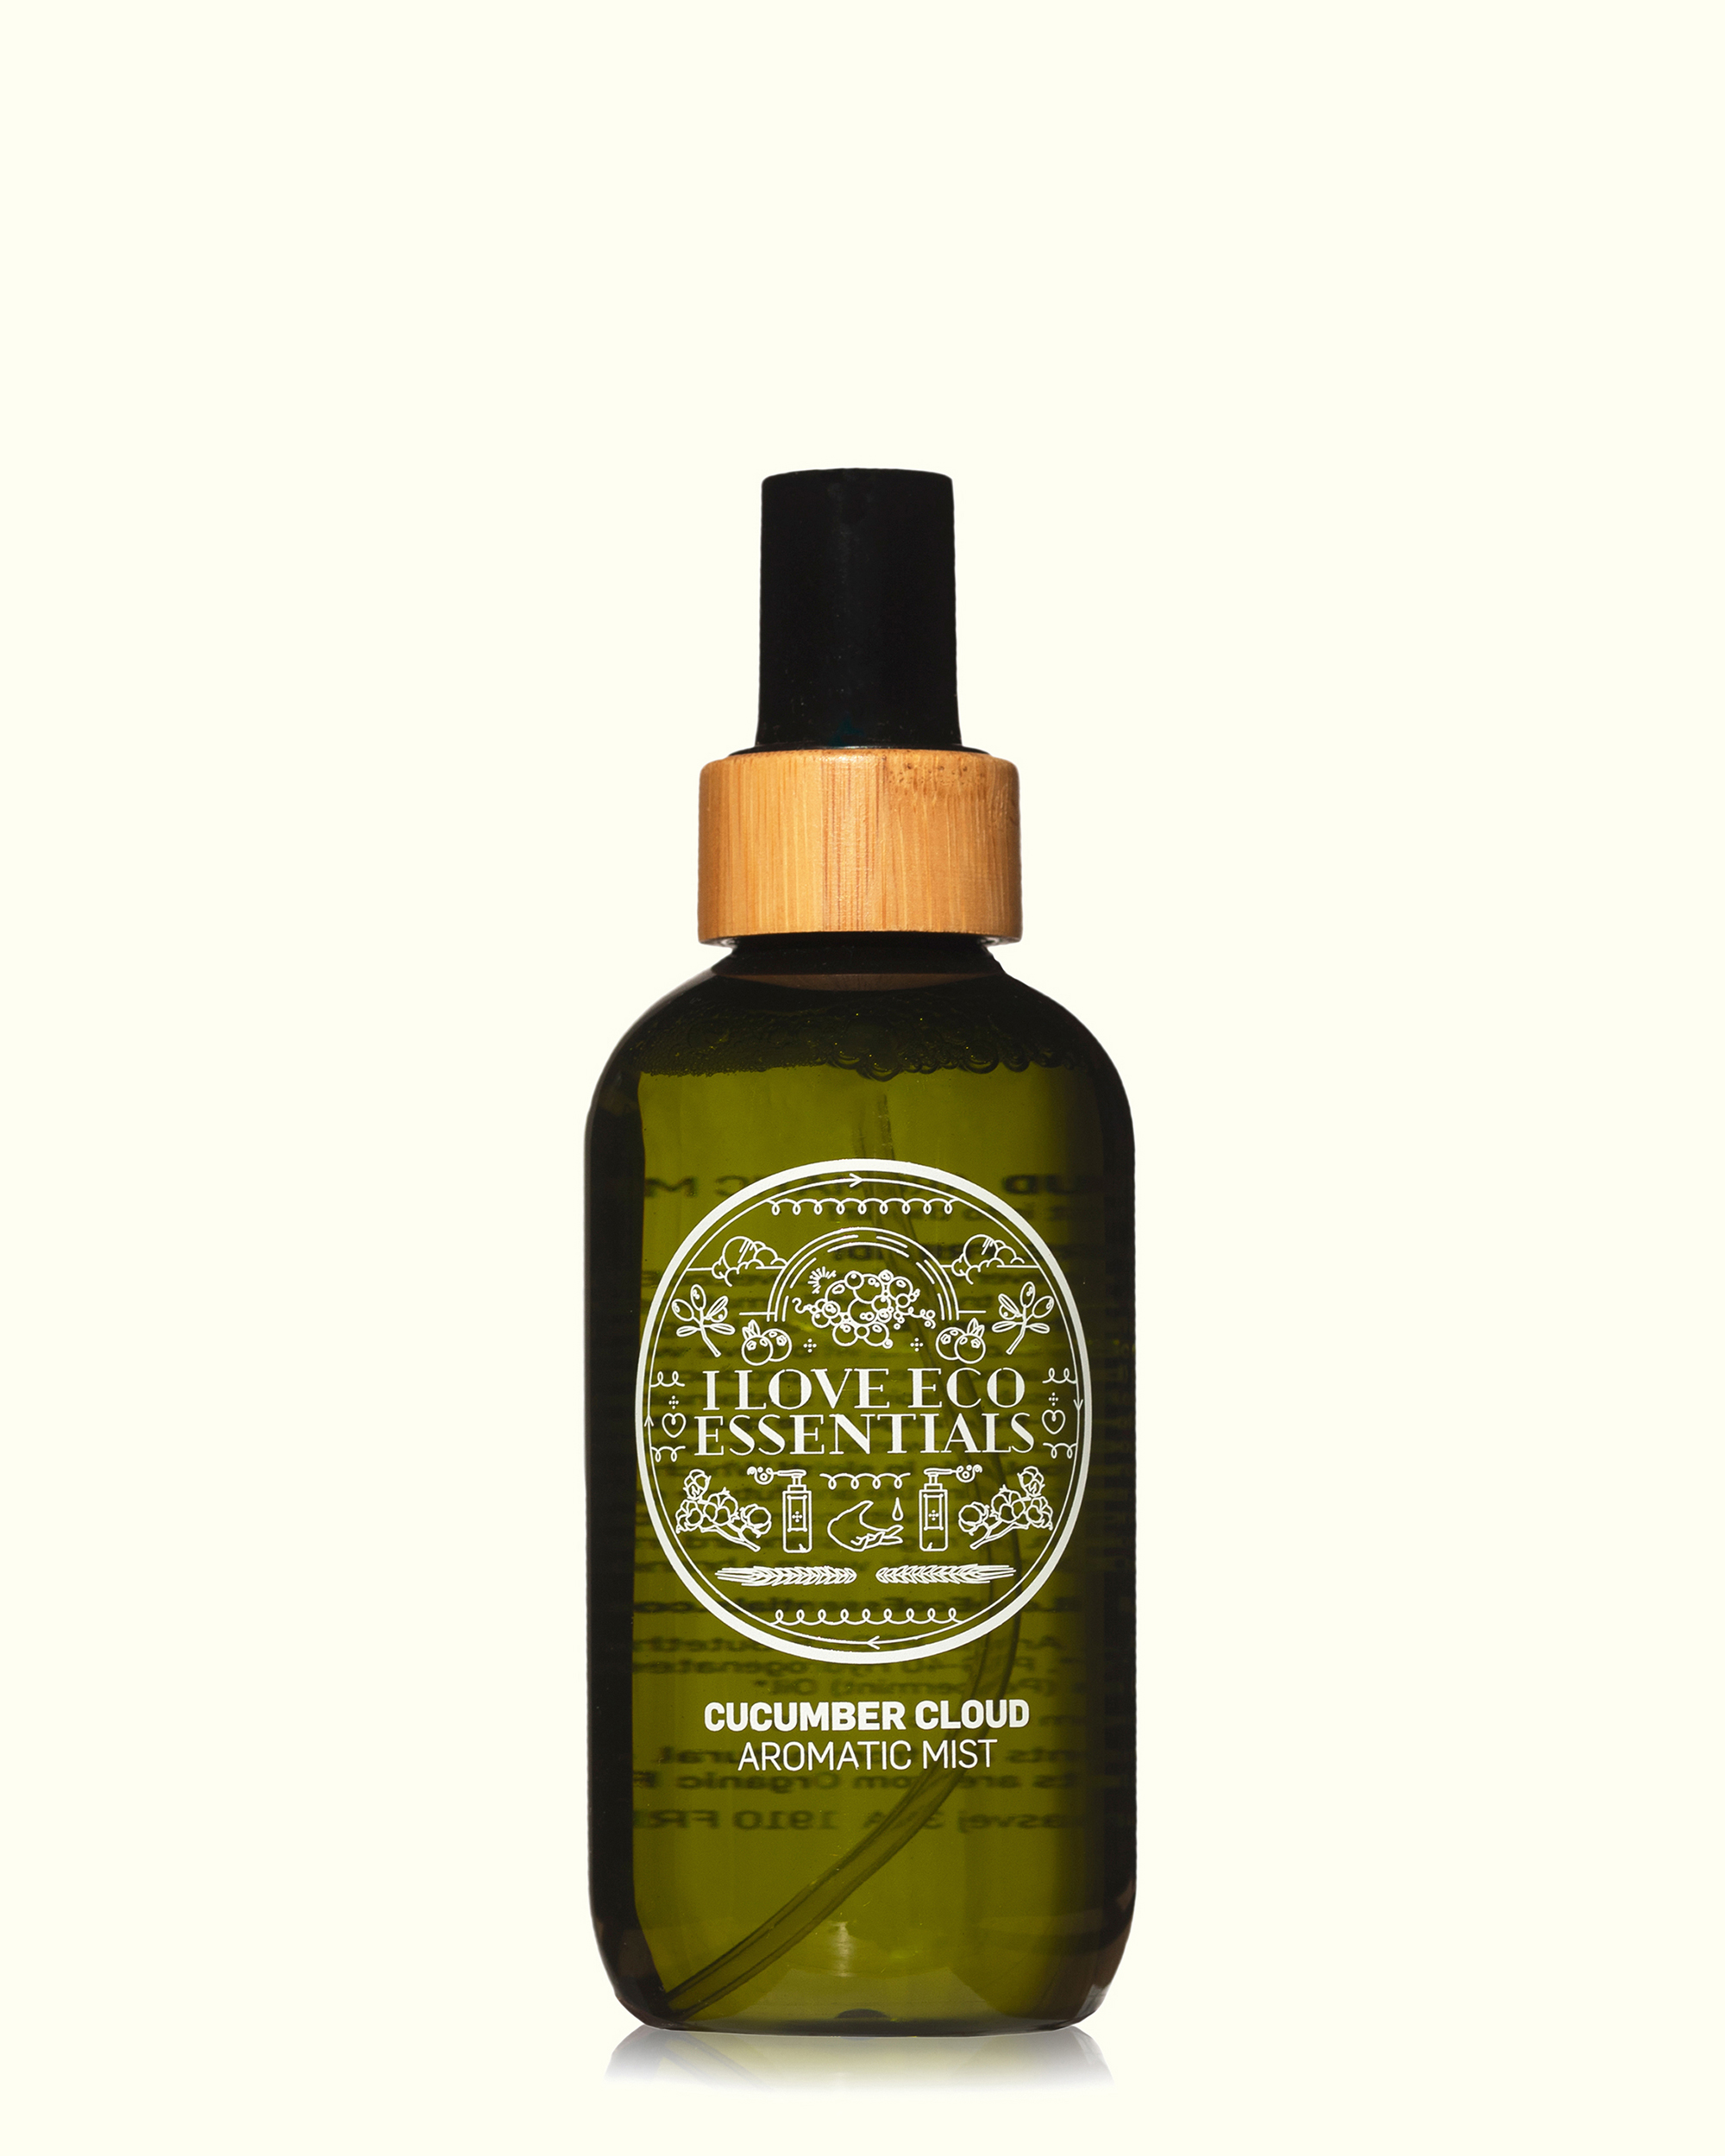 AROMATIC MIST 'cucumber cloud' from I LOVE ECO ESSENTIALS